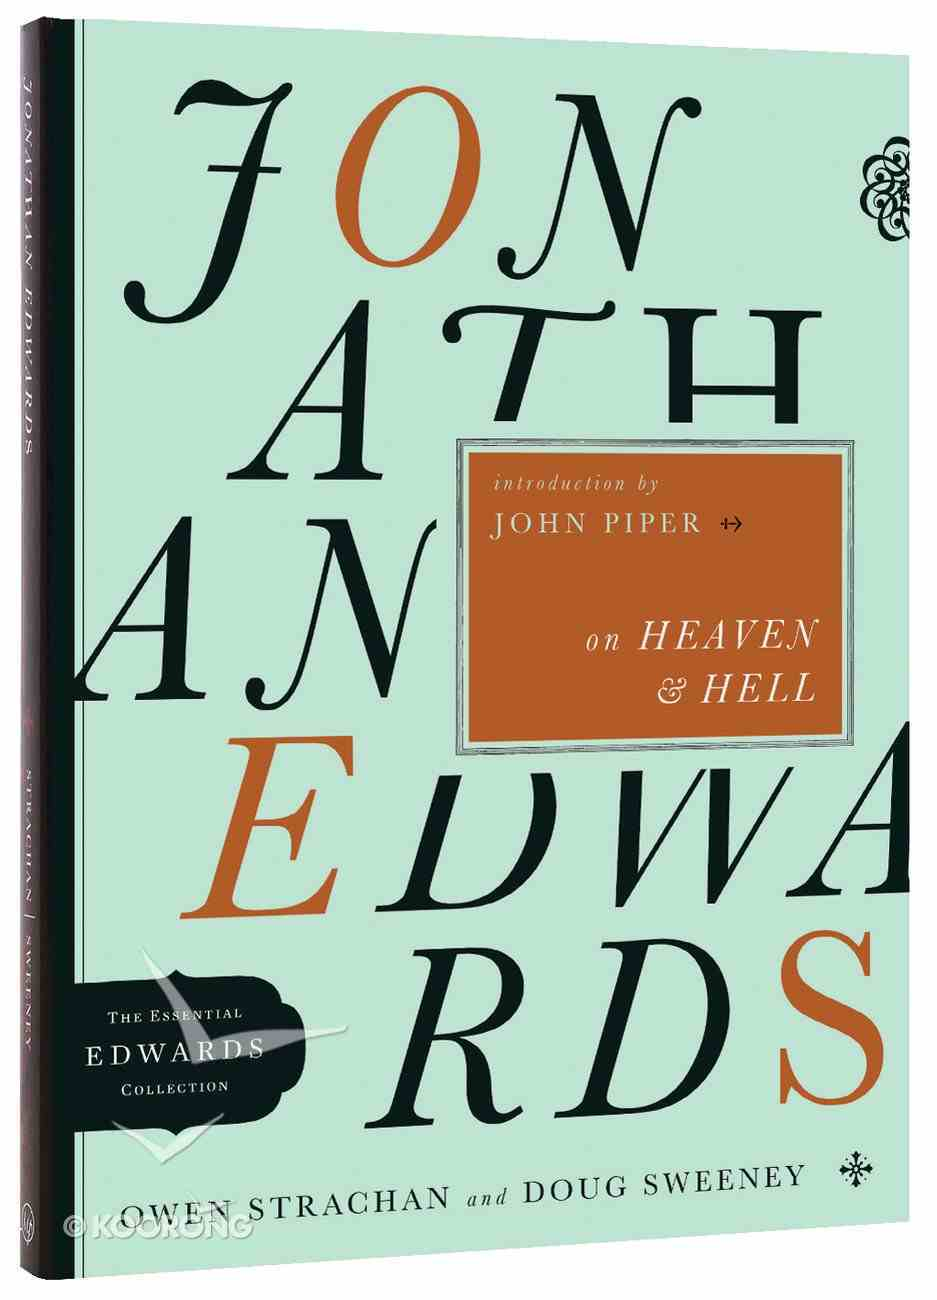 Jonathan Edwards on Heaven and Hell (Essential Edwards Collection) Paperback